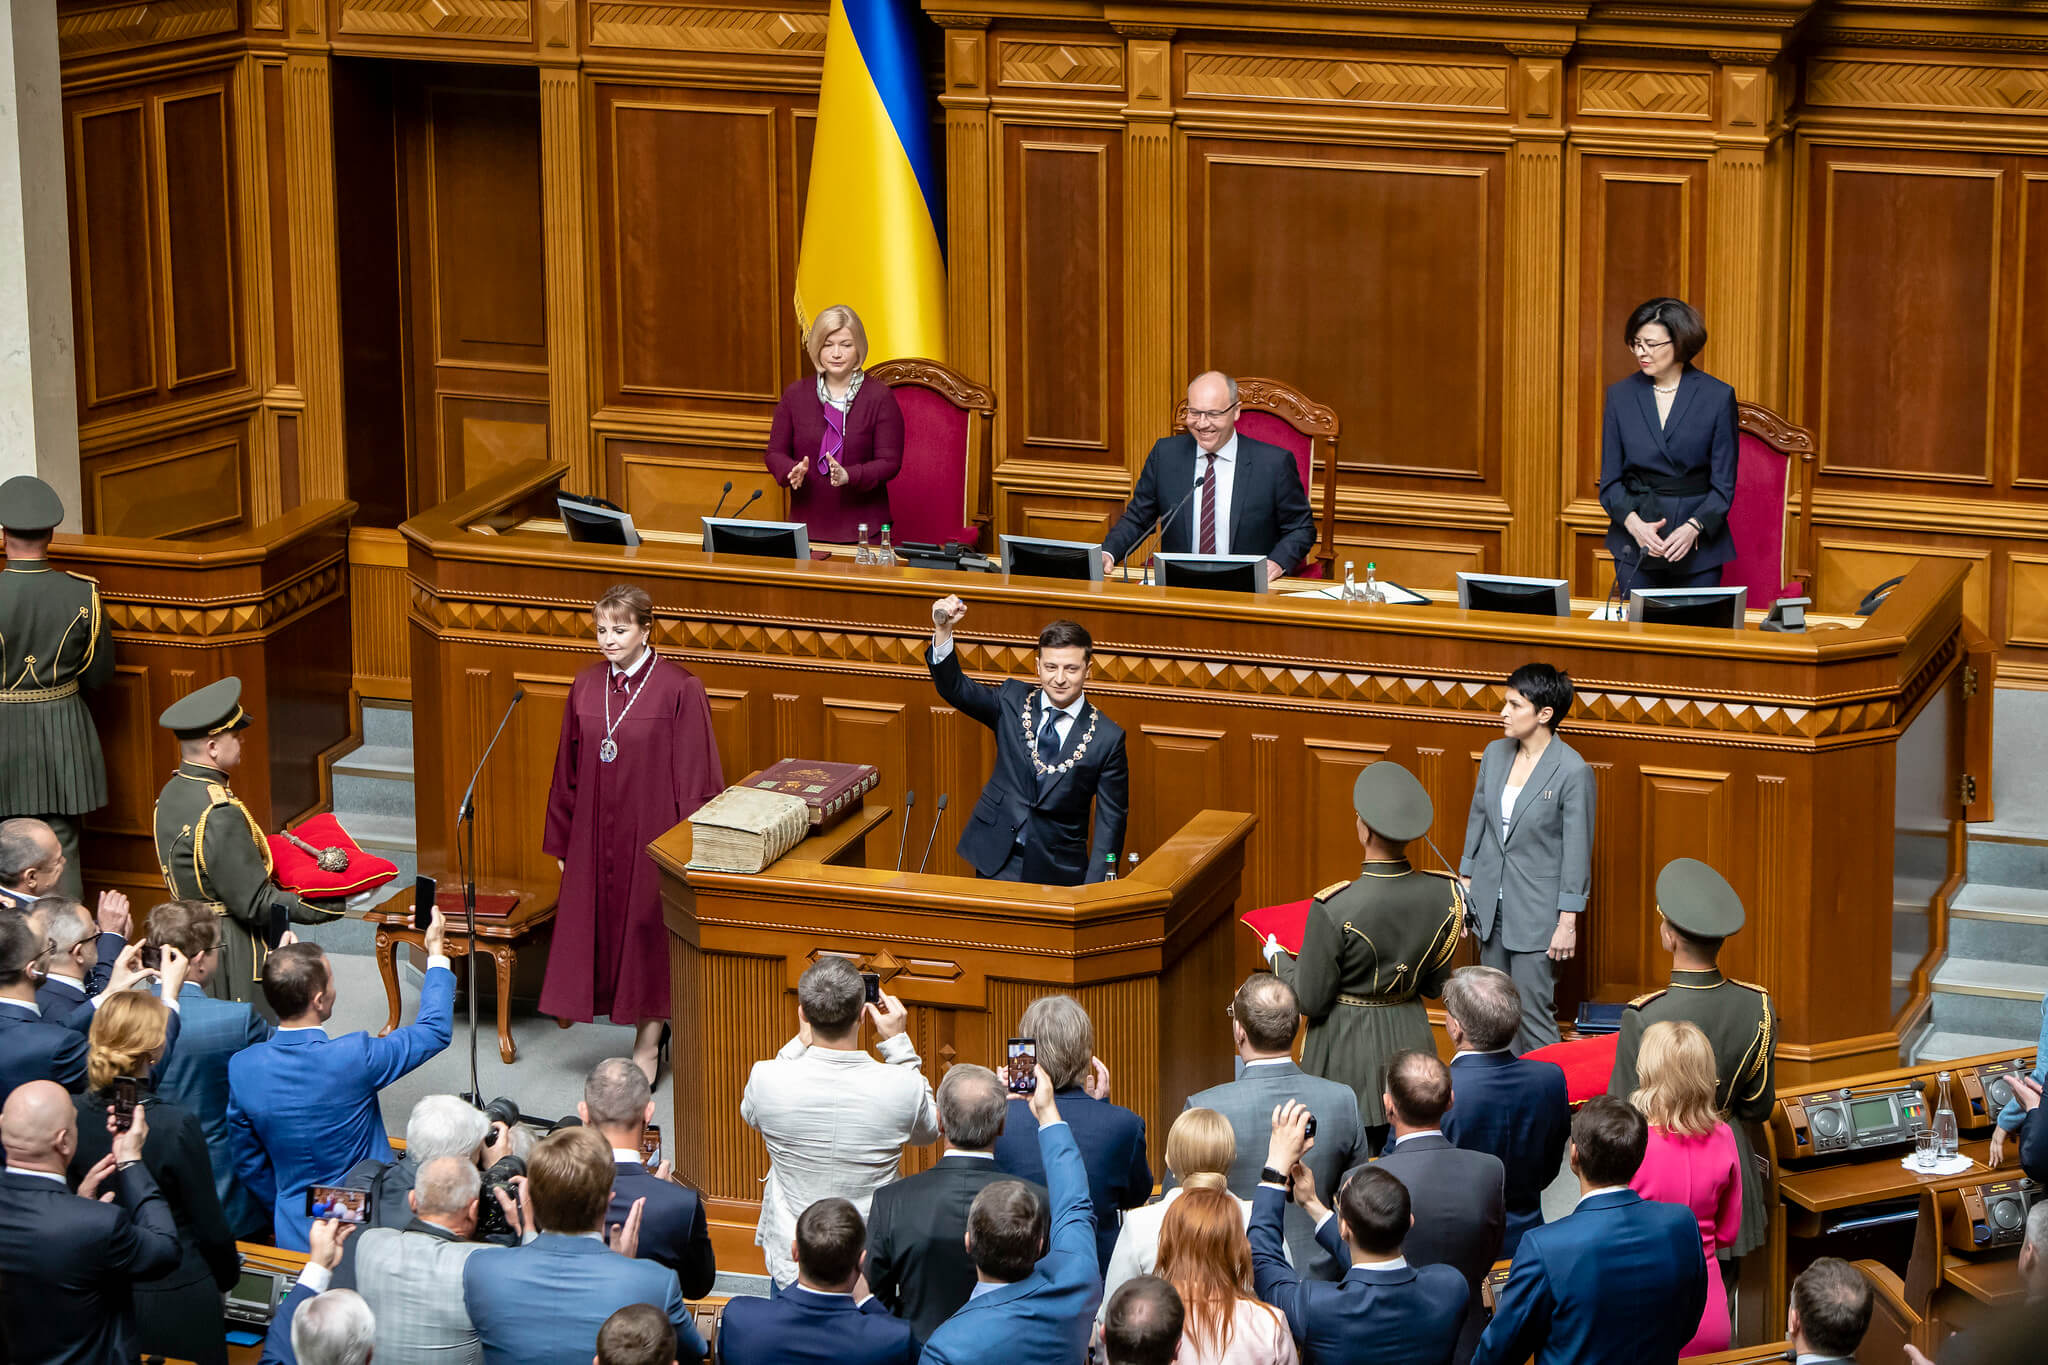 On May 20 2019, newly elected President of Ukraine Volodymyr Zelensky was sworn in as Head of State. © U.S. Embassy Kyiv Ukraine